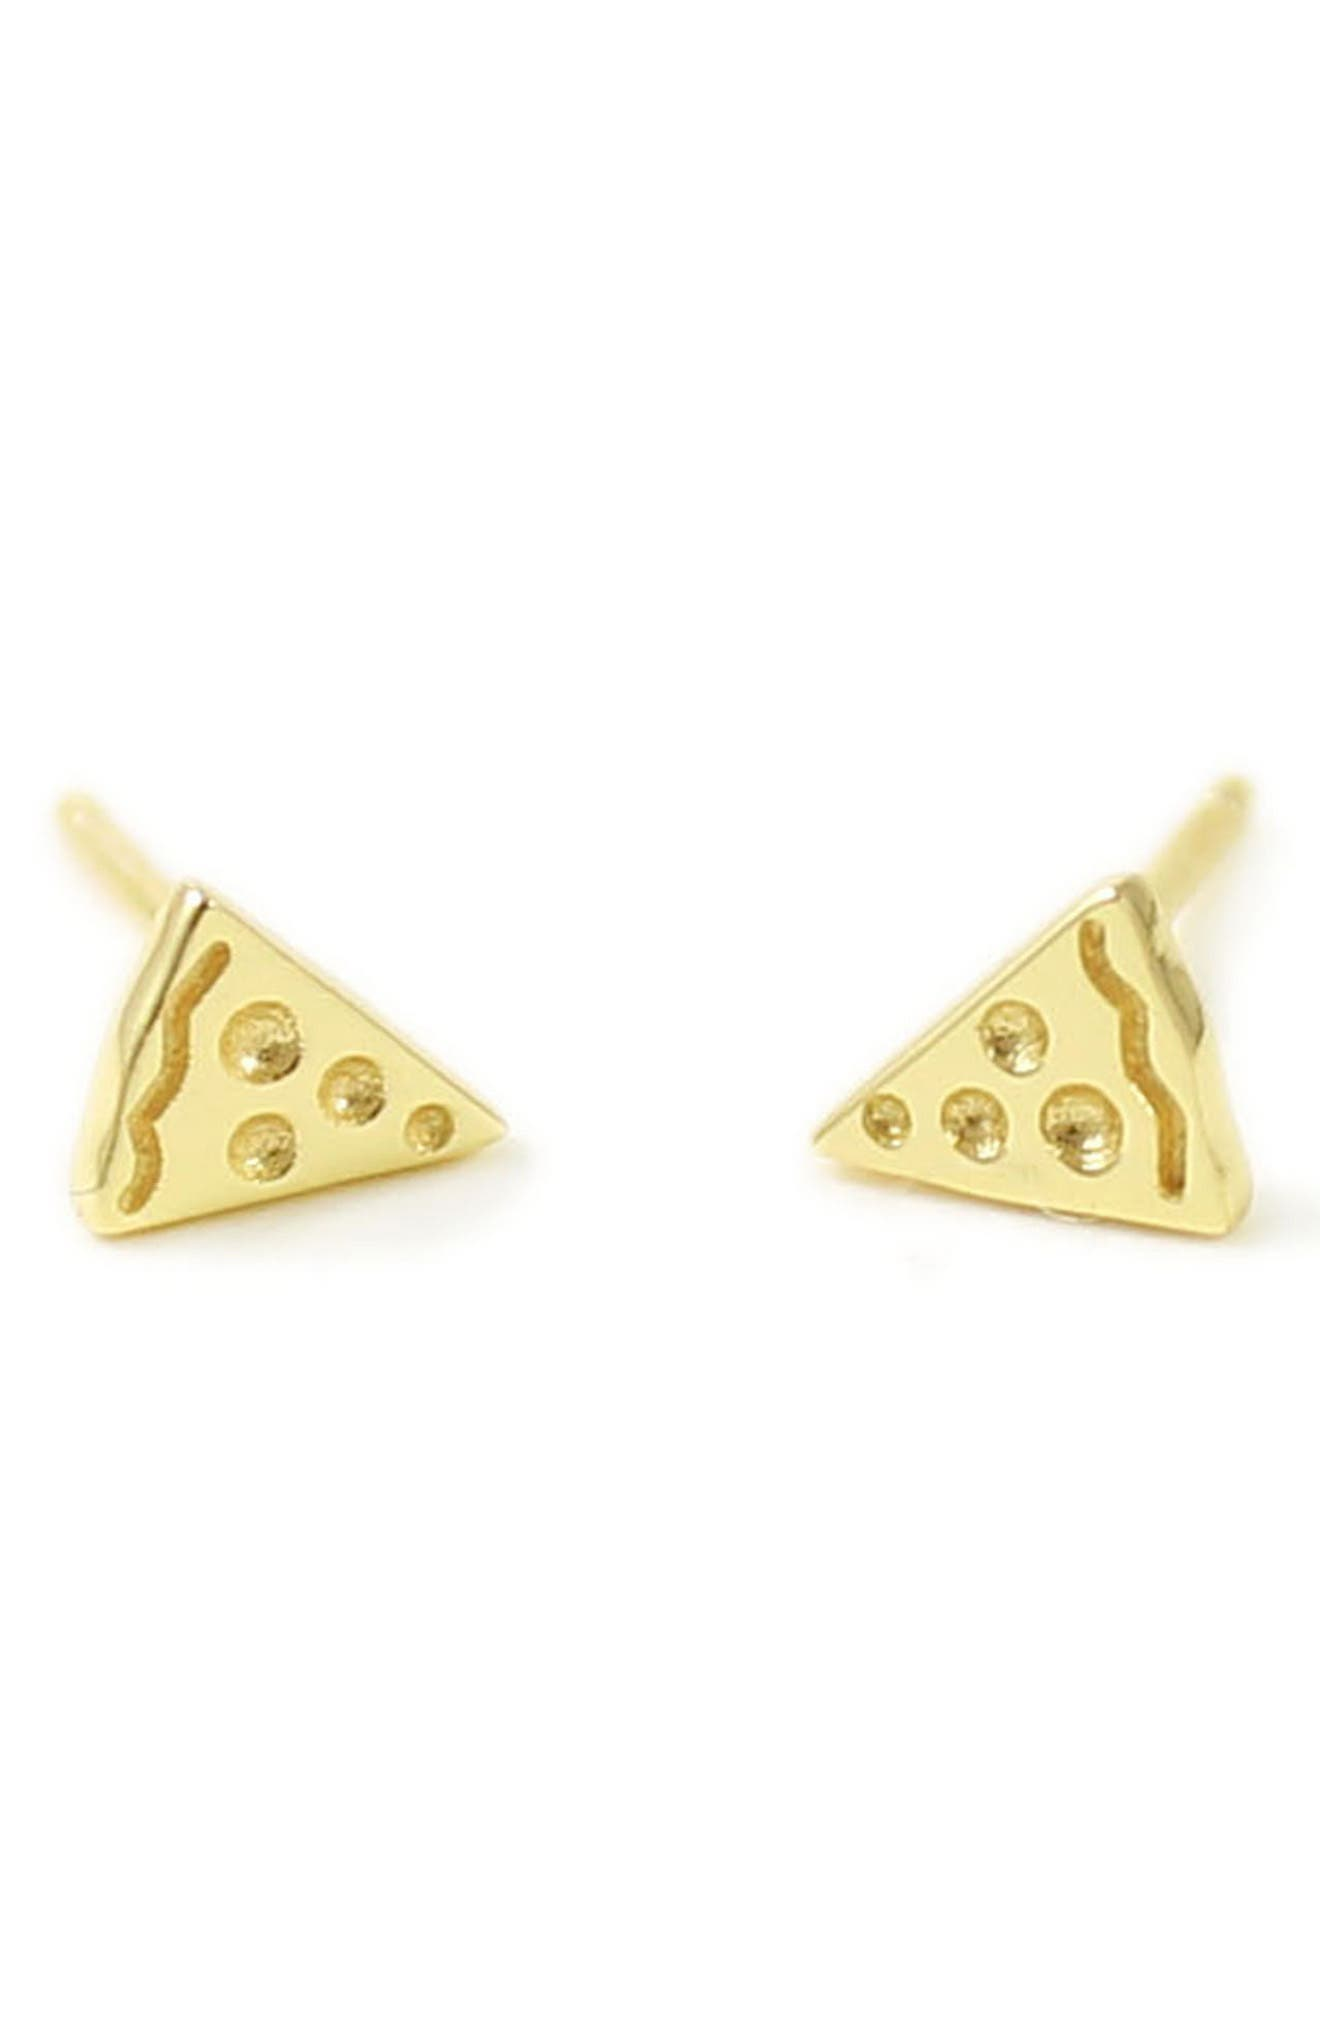 Kris Nations Pizza Stud Earrings